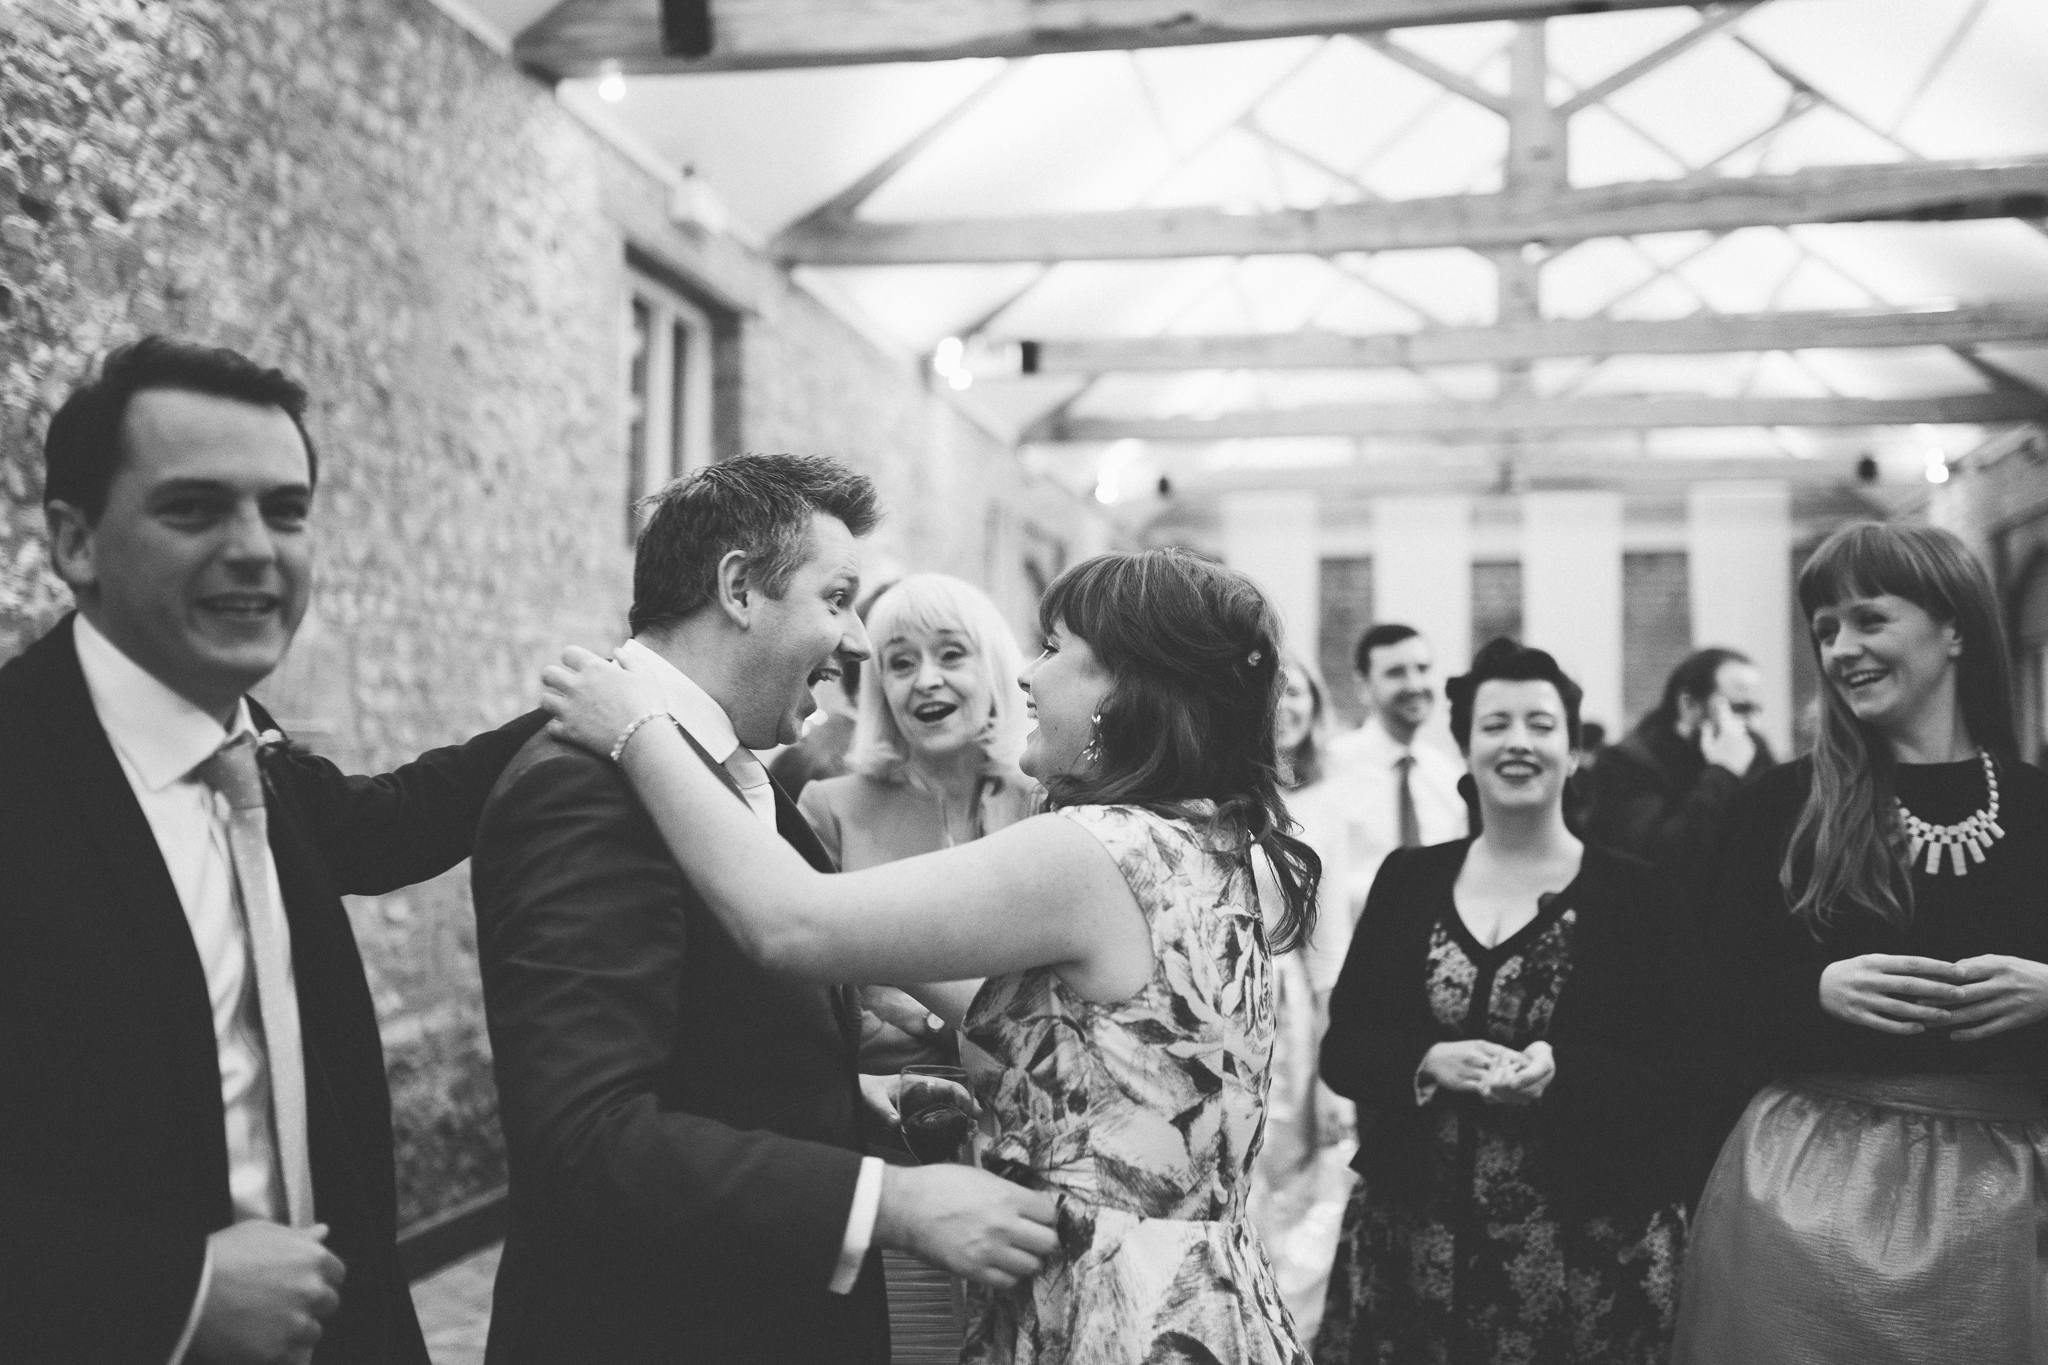 Farbridge Barn Wedding Creative Alternative Photo Chichester Joanna Nicole Photography (113 of 133).jpg